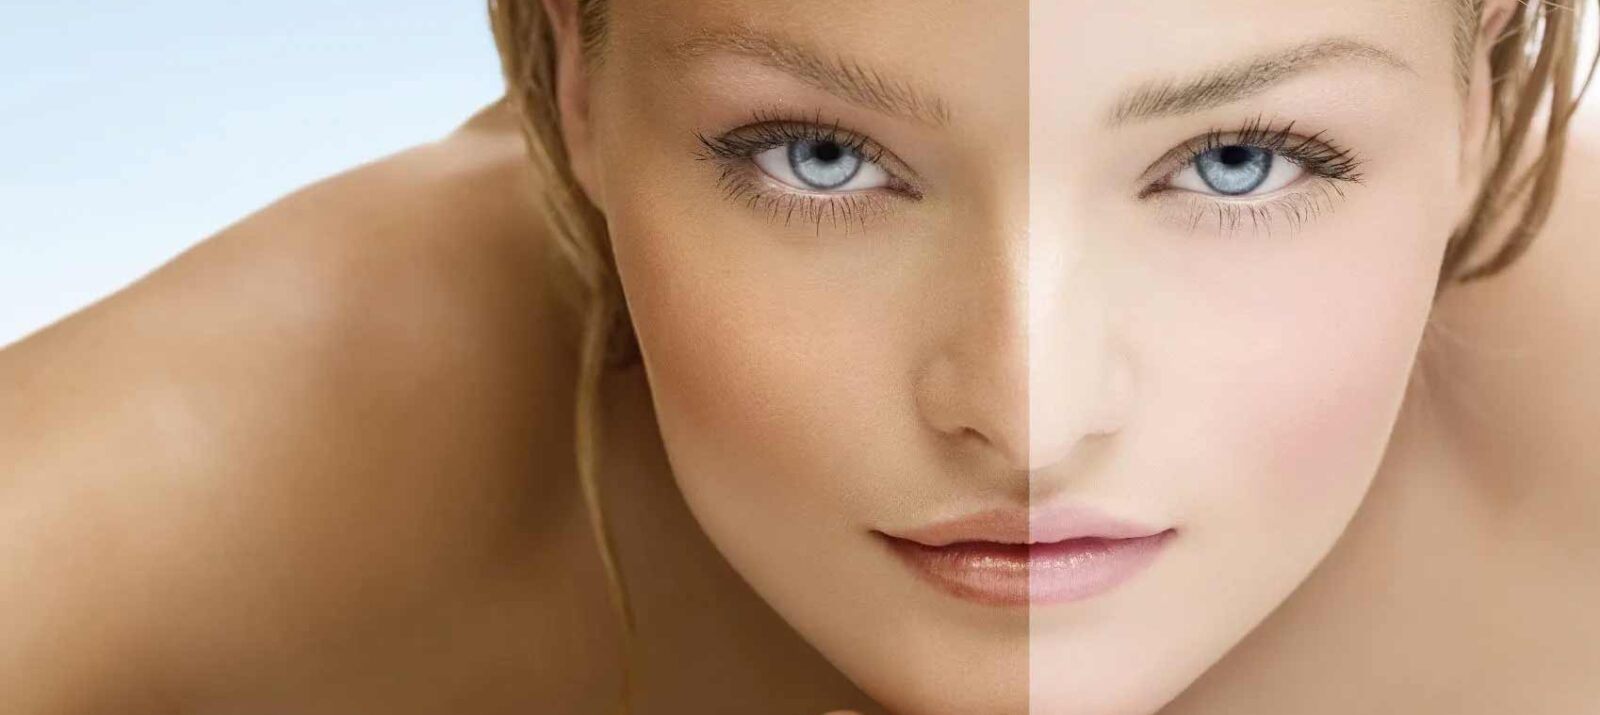 A Spray Tan is Confidence Applied Directly to the Body